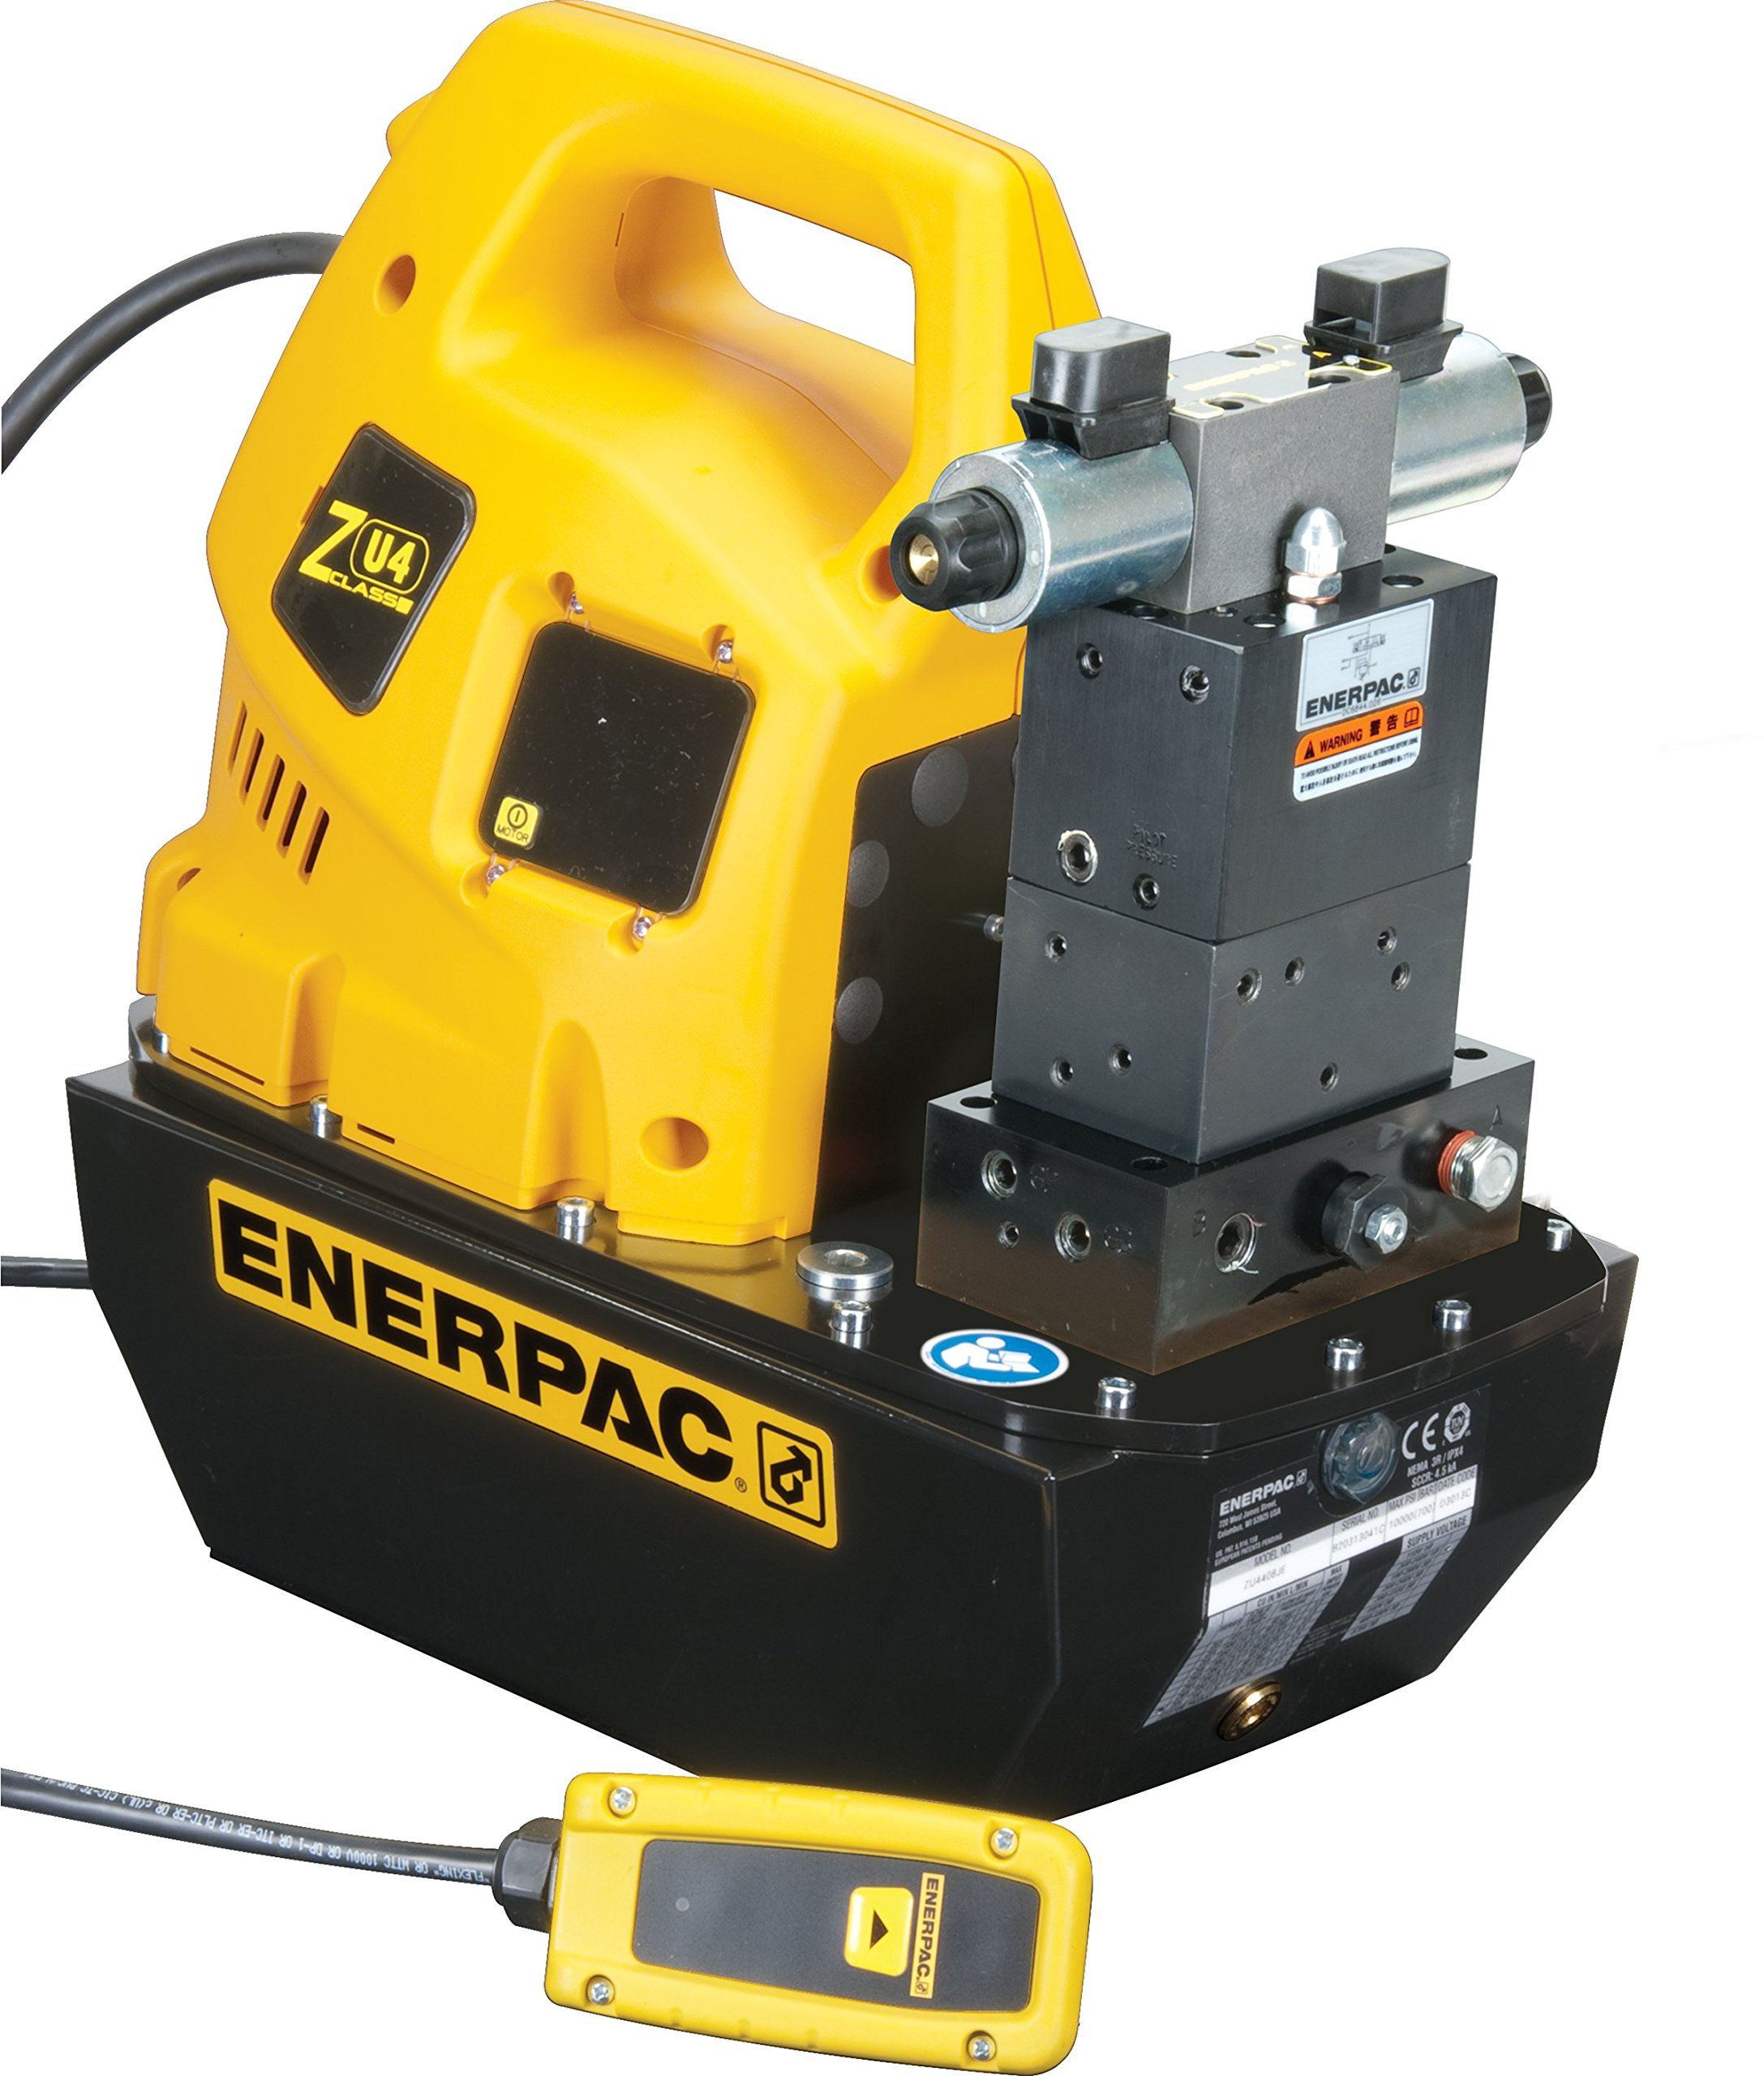 Enerpac ZU4408SB Universal Electric Pump with VE43 Solenoid Valve Liquid Crystal Display 115 Volts and 8 Liters Usable Oil Capacity by Enerpac